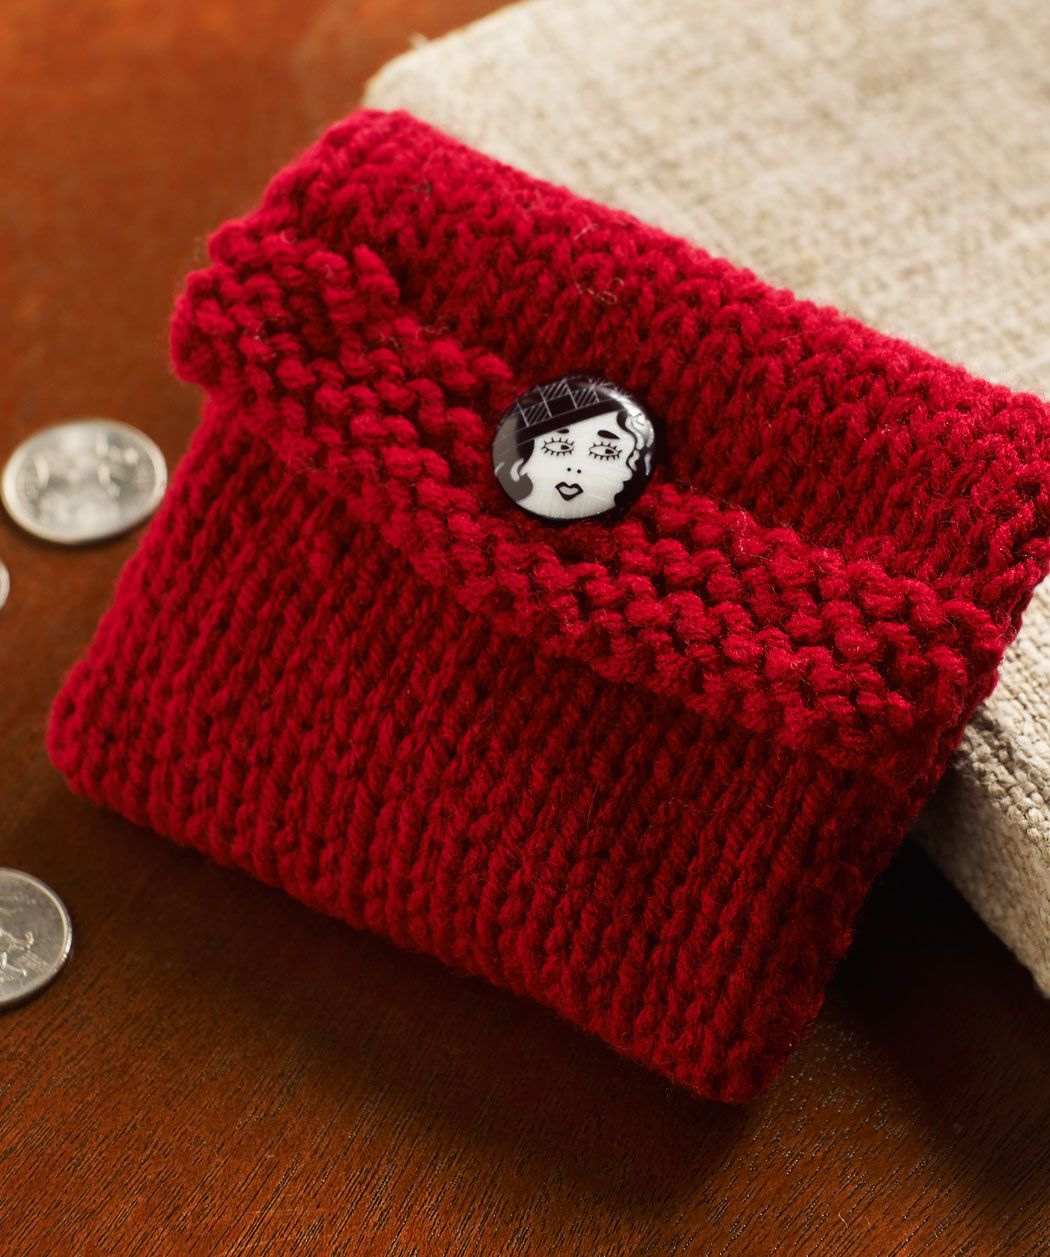 Knitted change purse easy project for beginners hold change free knitting pattern for easy change purse bitty bag bobbi andersons easy beginner project for red heart is perfect for coins stitch markers bankloansurffo Images